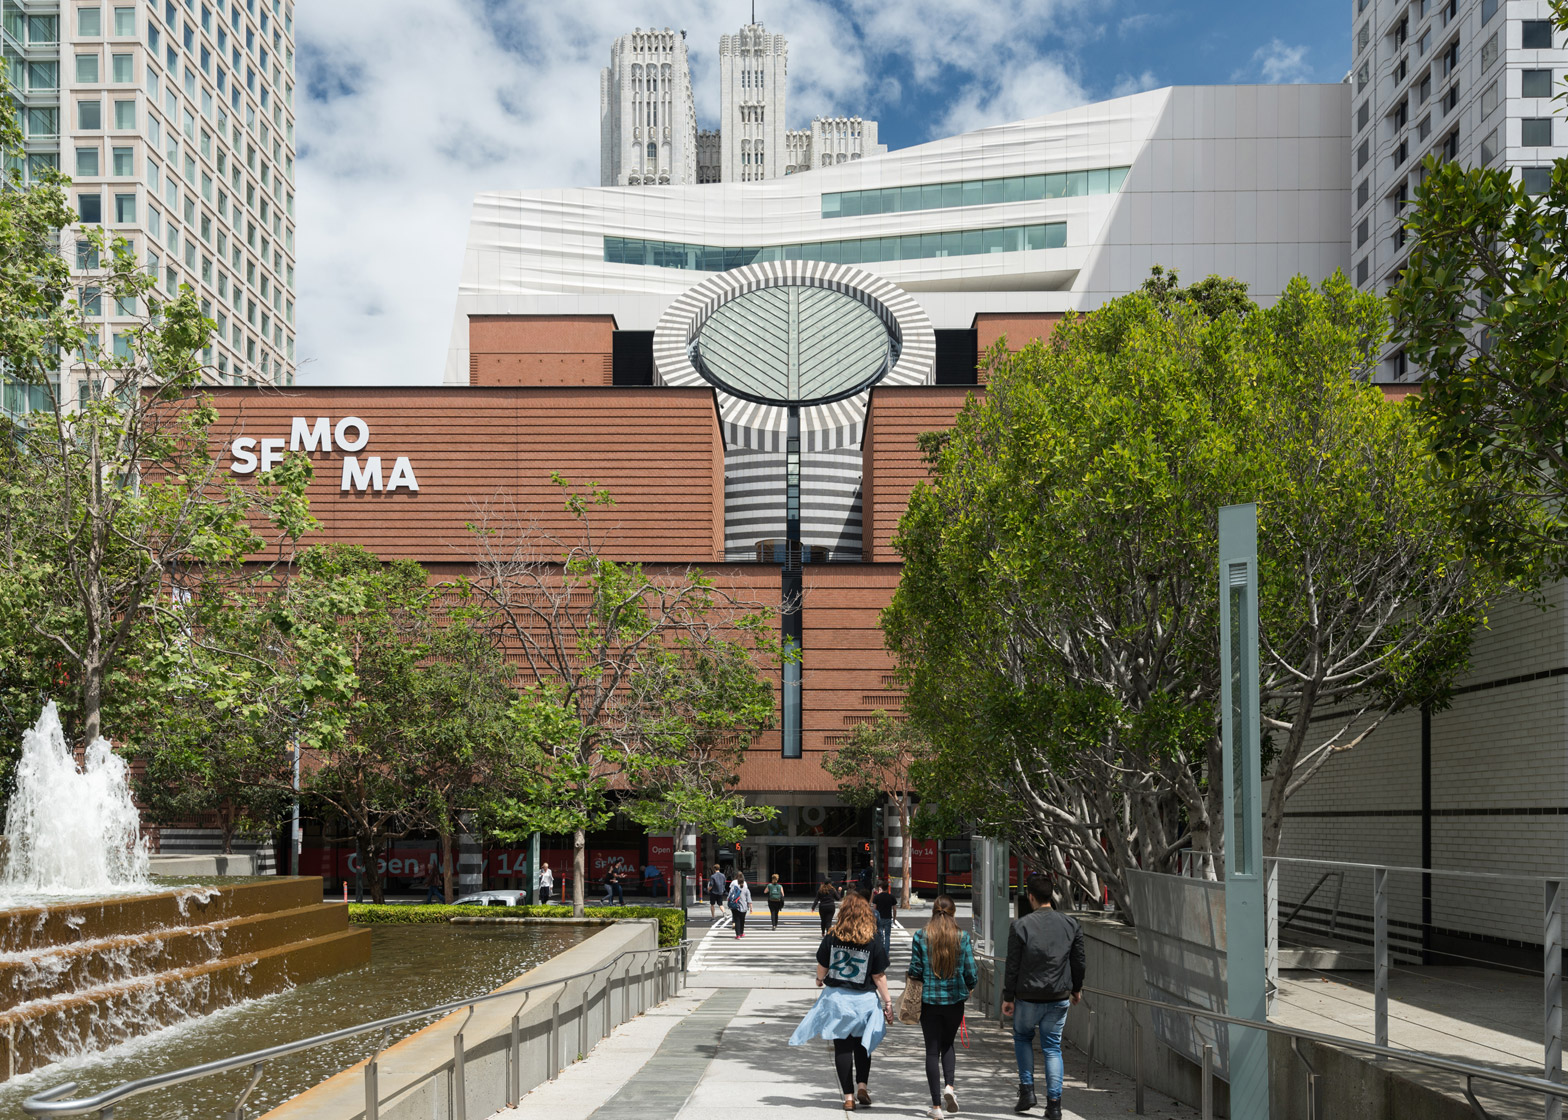 Critics respond to SFMOMA